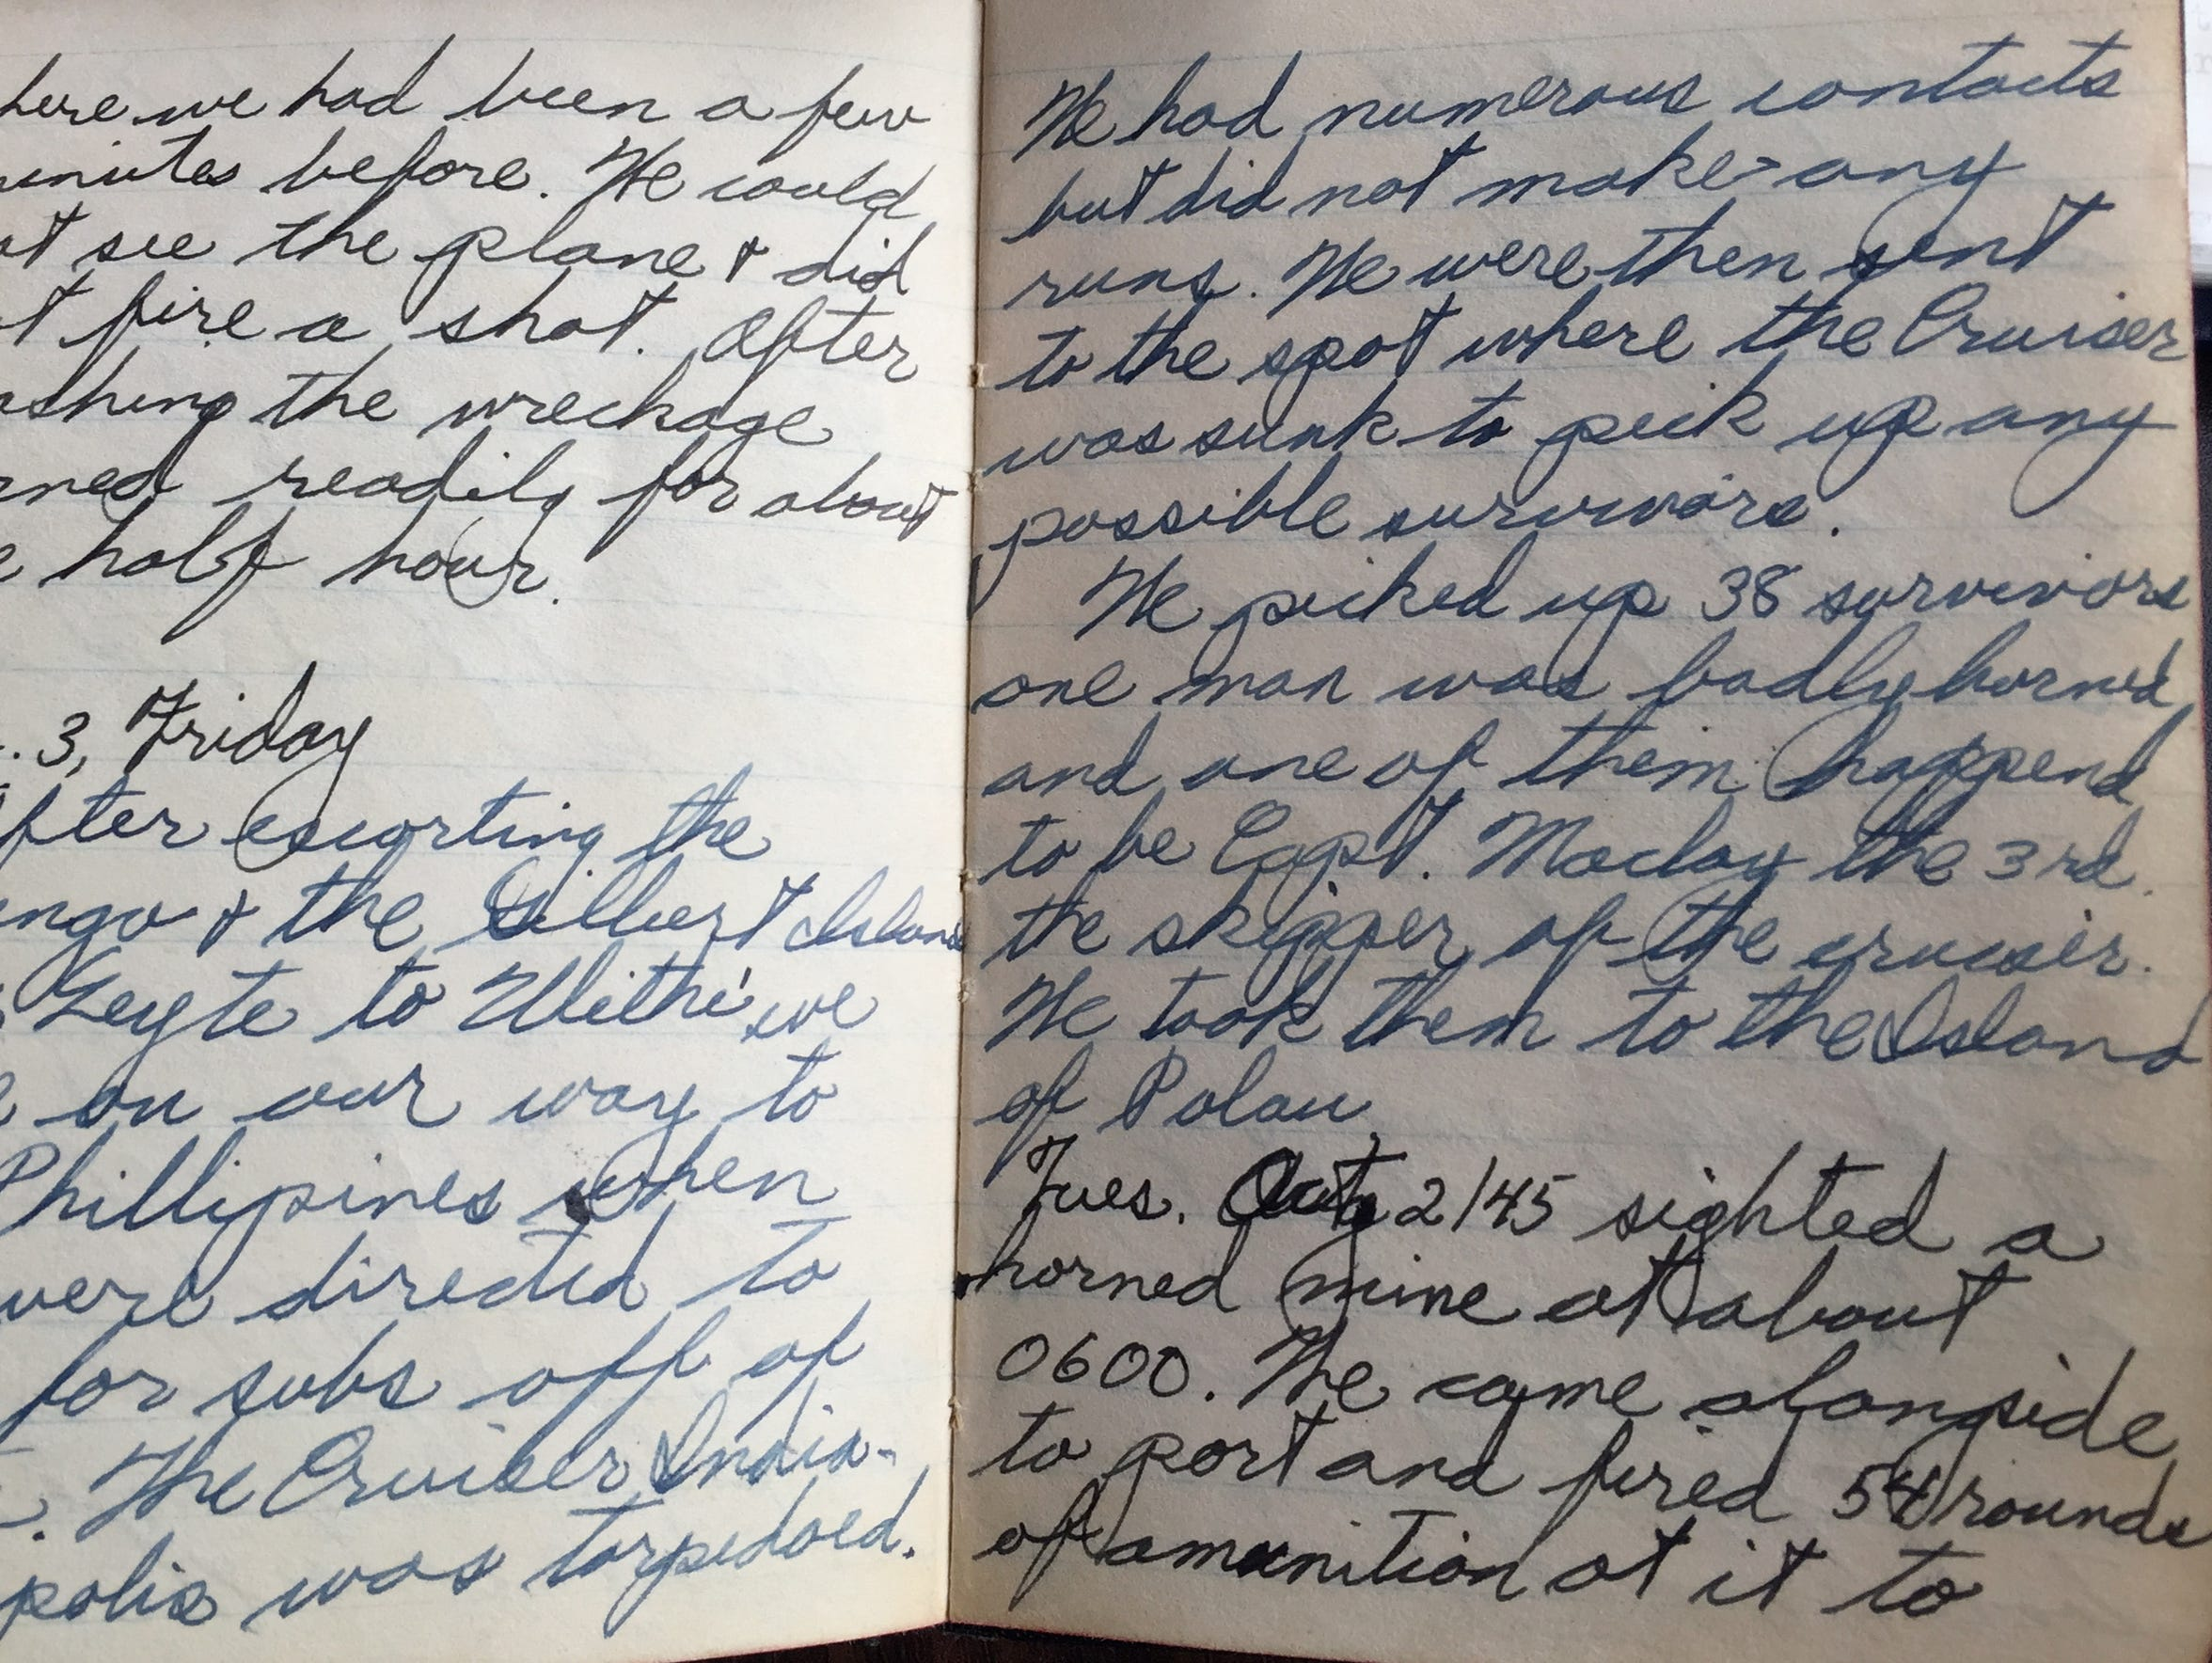 U.S.S. Ringness sailor's journal entry on Aug. 3, 1945,